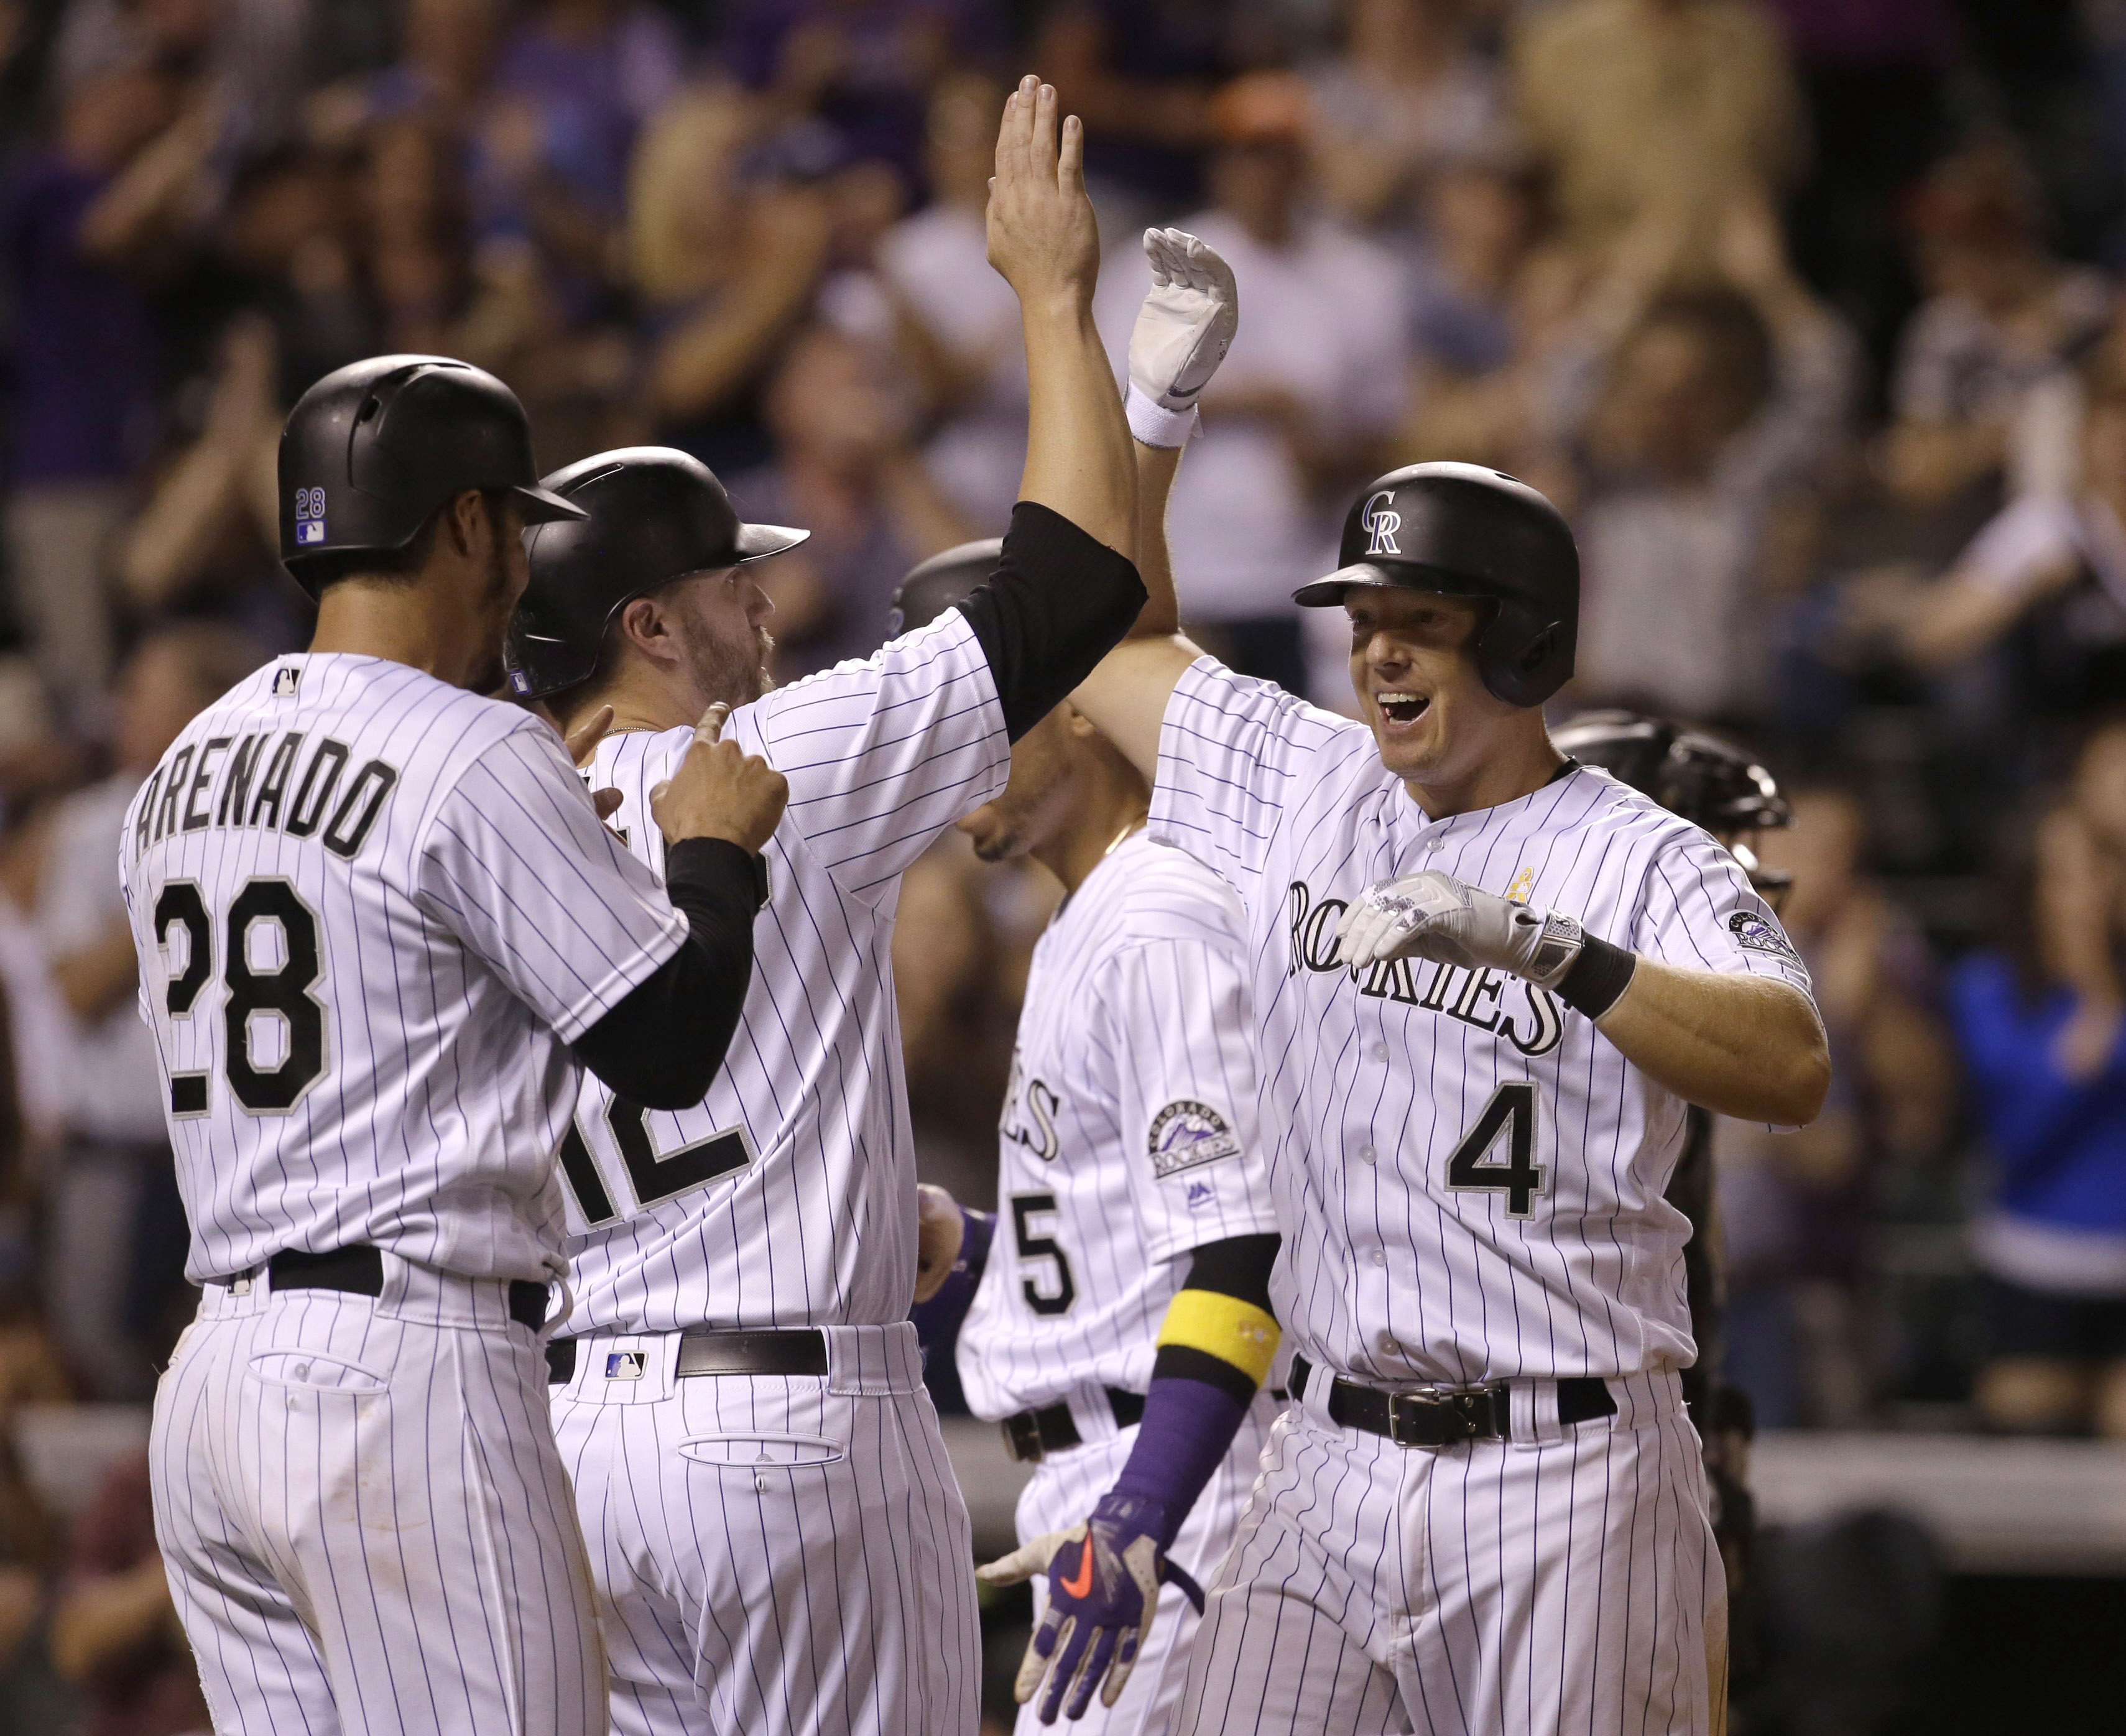 .Nick Hundley #4 of the Colorado Rockies celebrates at home plate after his grand slam home run with teammates Nolan Arenado #28 of the Colorado Rockies, Mark Reynolds #12 of the Colorado Rockies and Carlos Gonzalez #5 of the Colorado Rockies against the Arizona Diamondbacks in the eighth inning  at Coors Field on September 2, 2016 in Denver, Colorado. (Photo by Joe Mahoney/Getty Images)